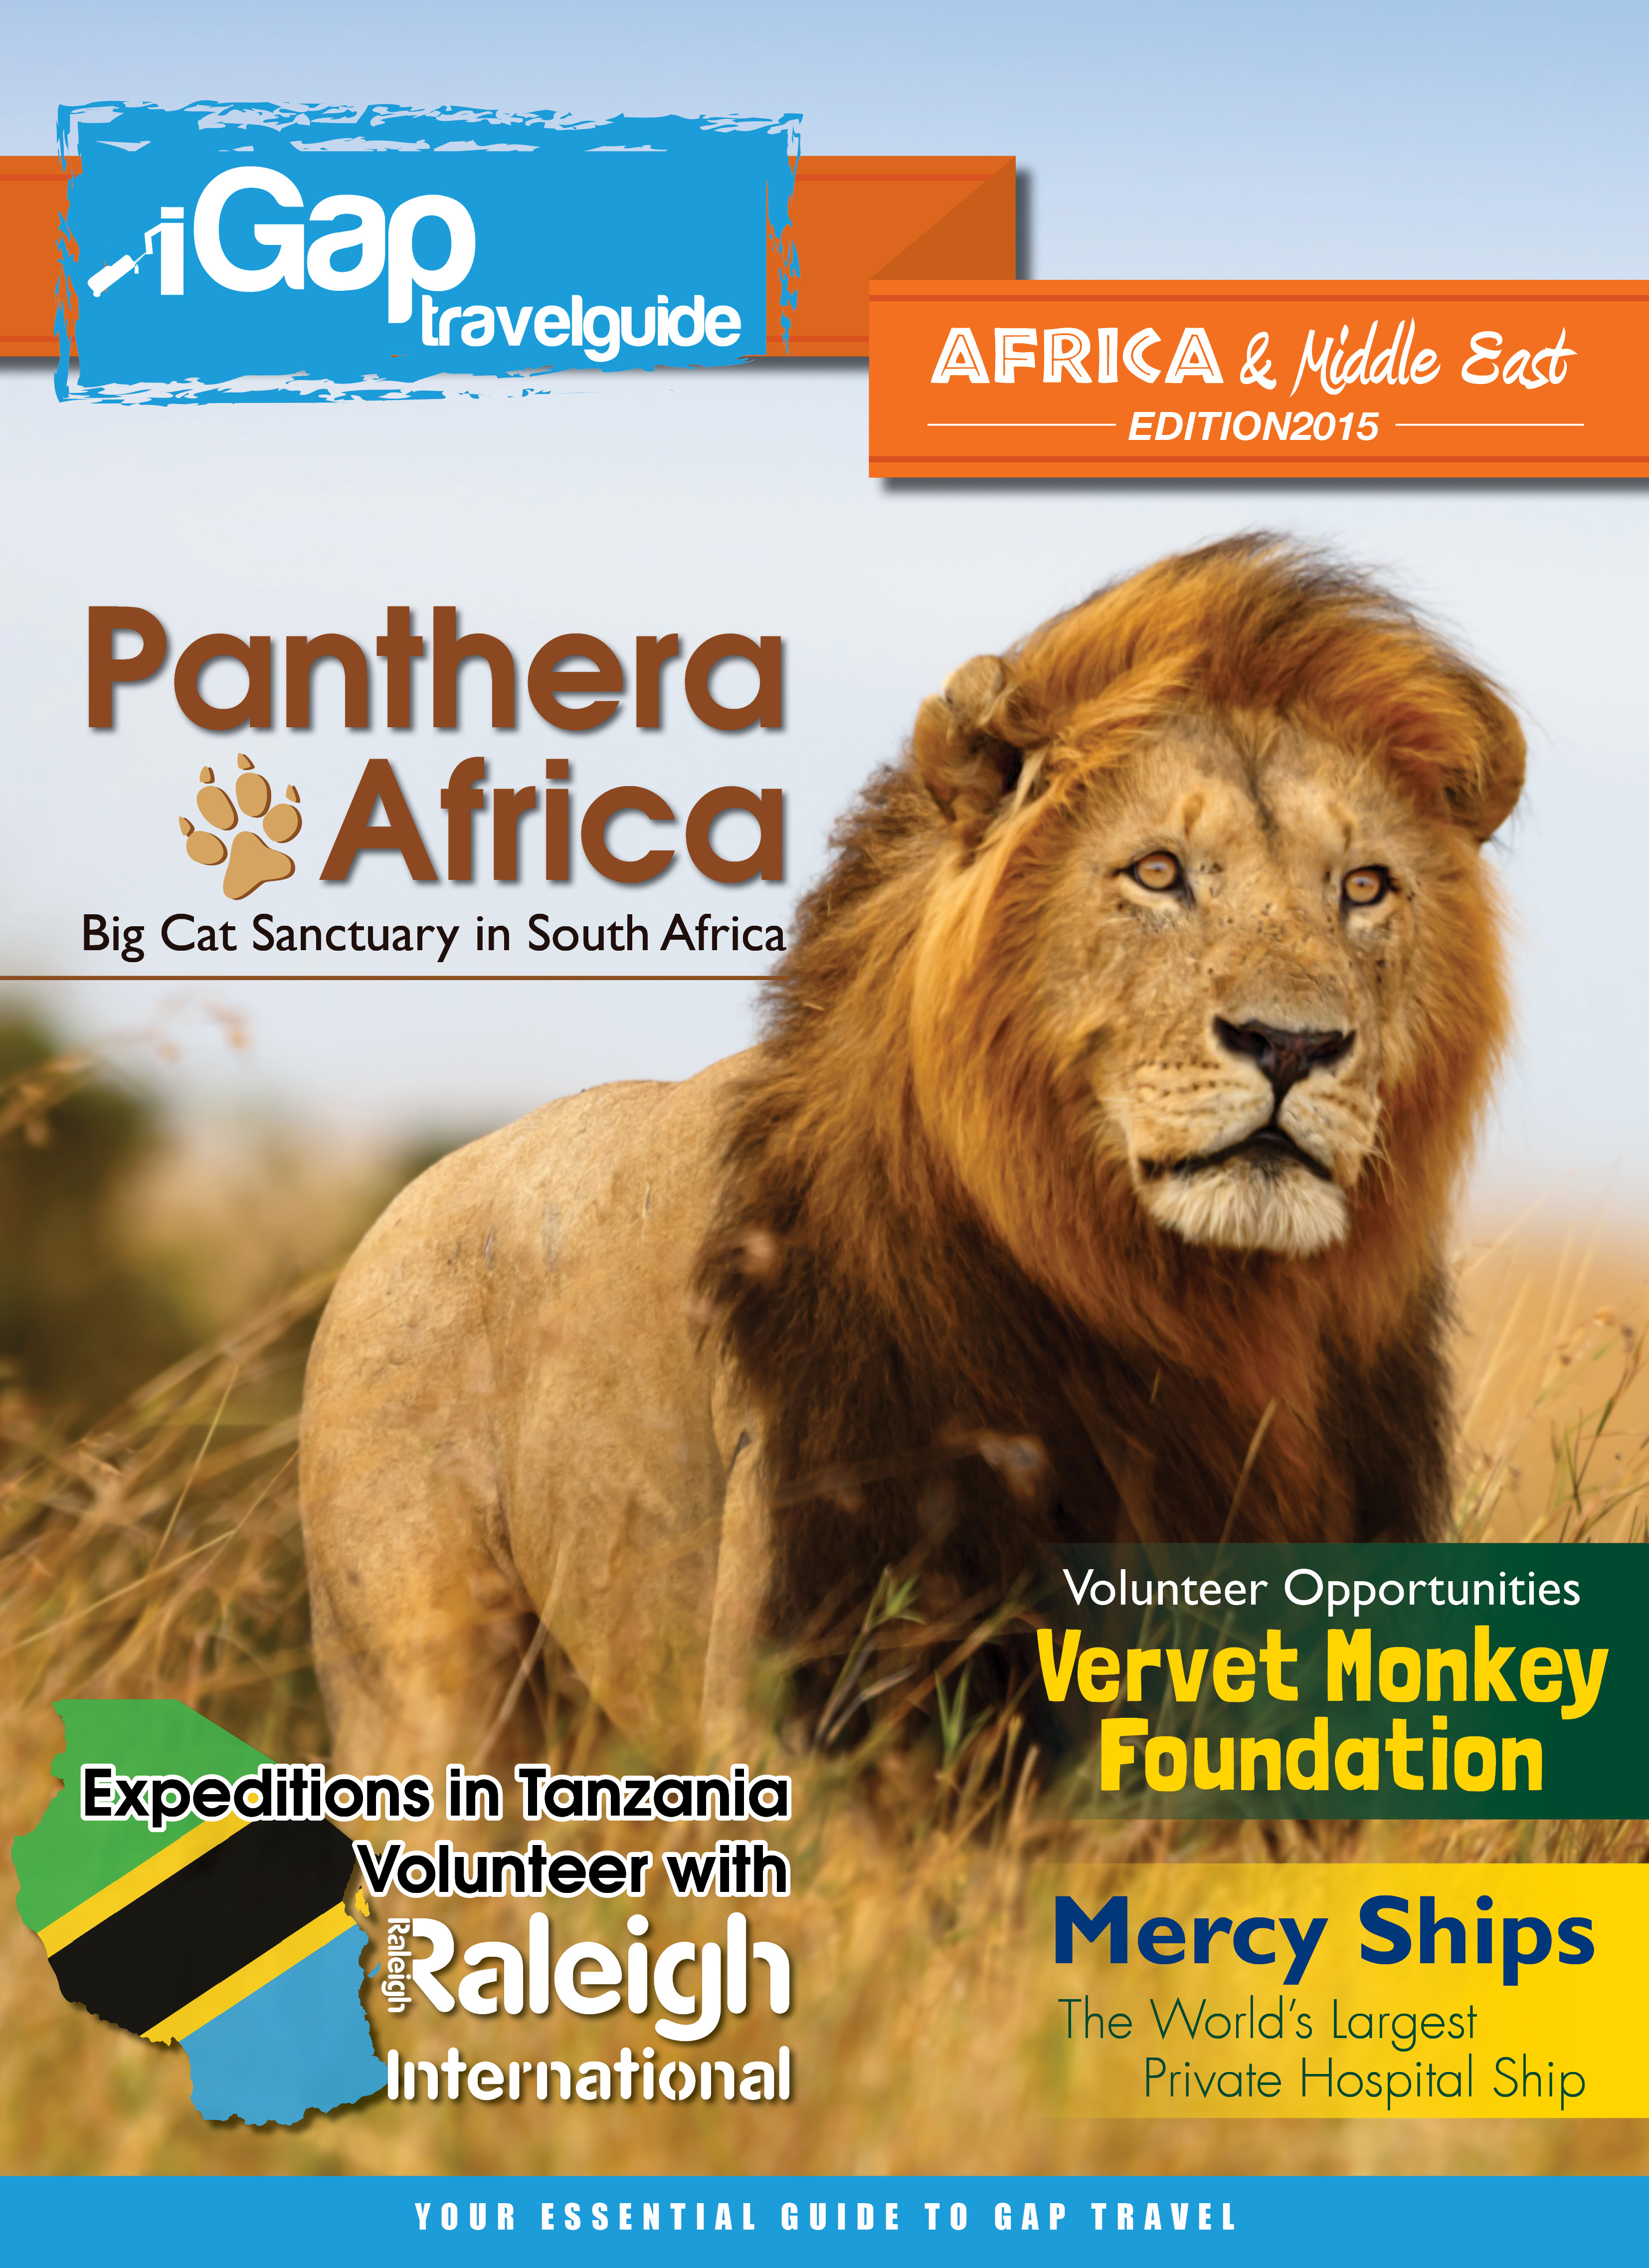 iGap Africa & Middle East 2015 - Cover Image